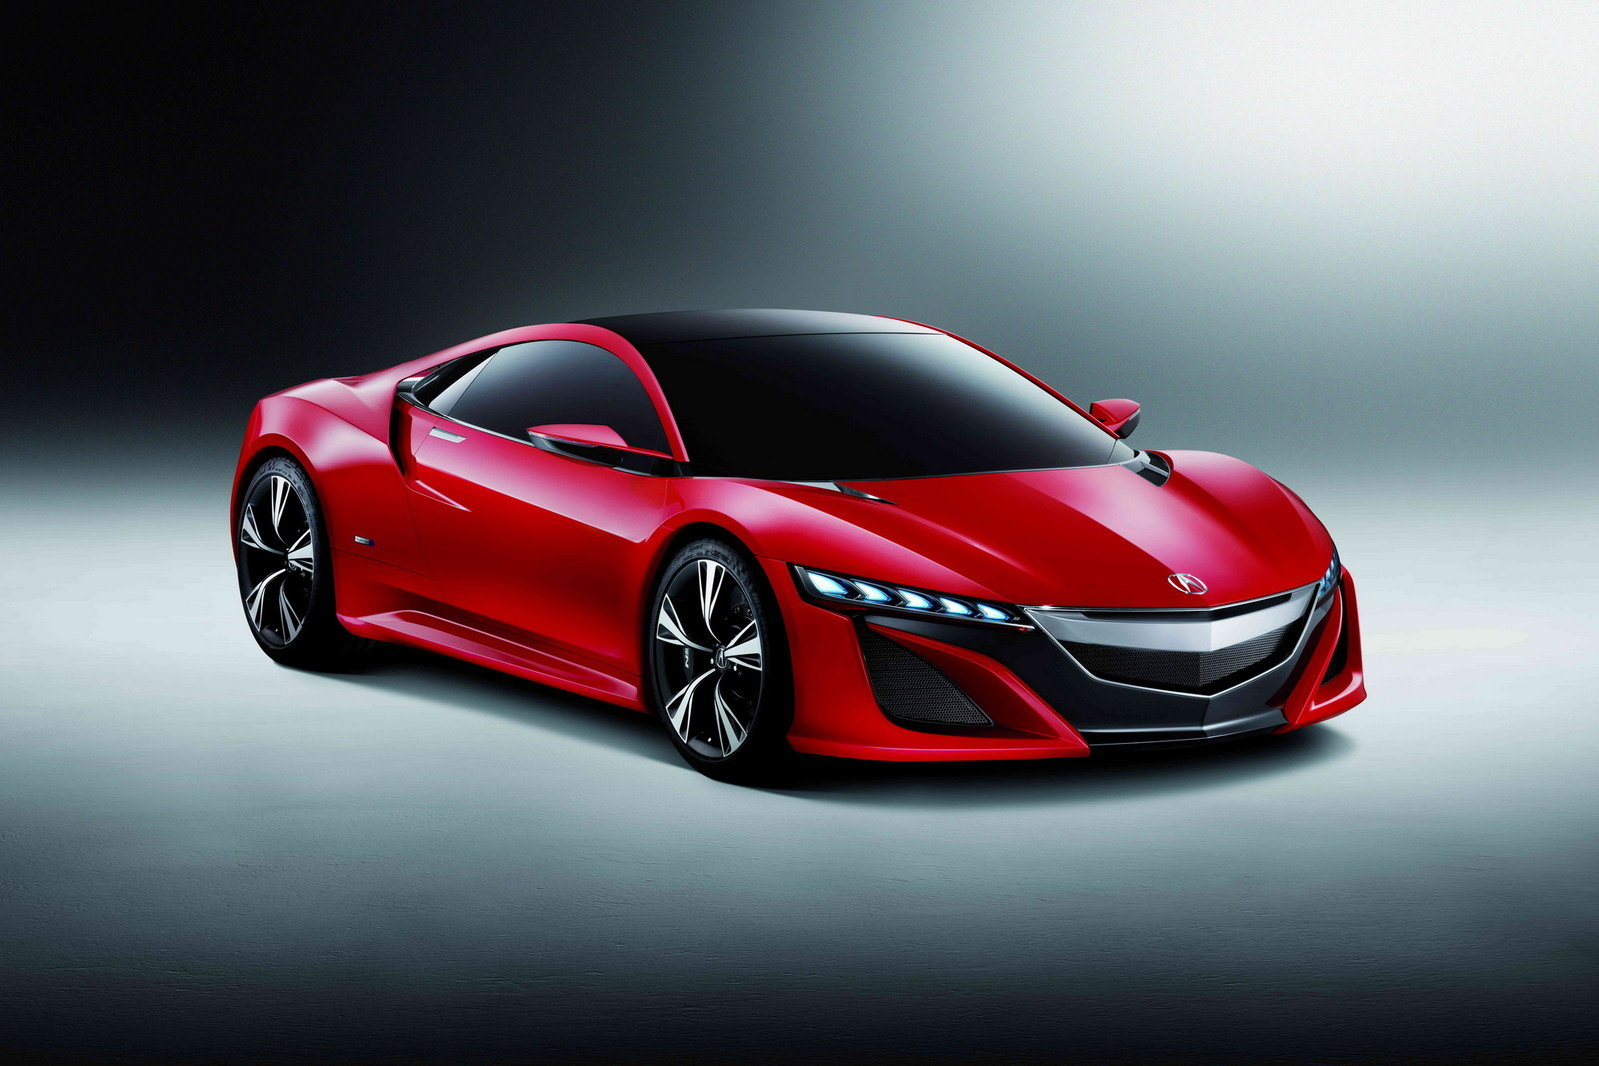 2012 Acura NSX Concept | car review @ Top Speed